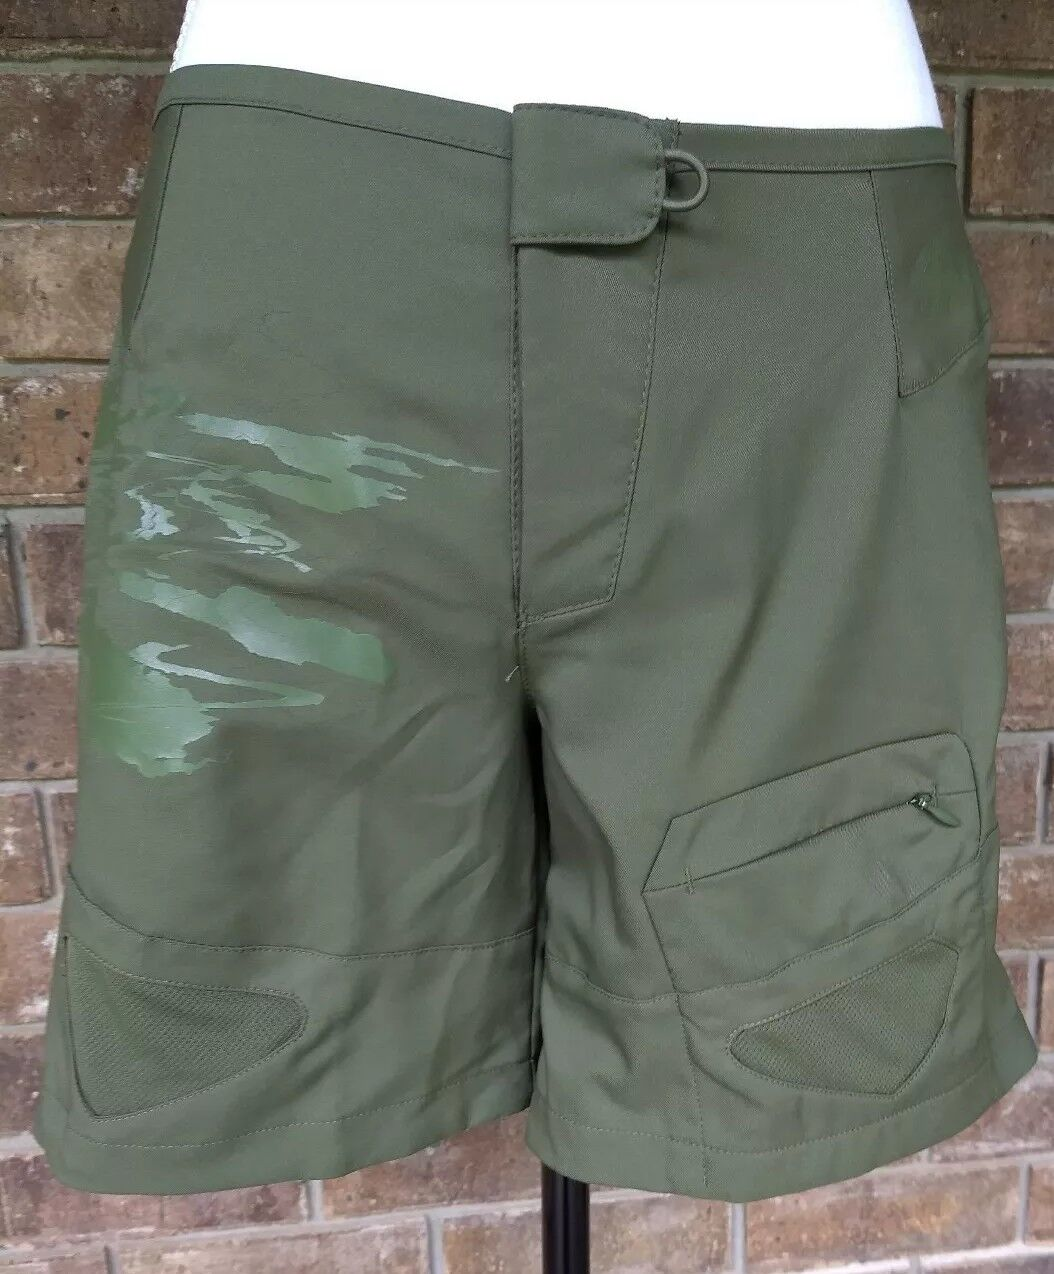 Rare NWT NIKE All Condition Gear ACG Vented Trail Hiking Shorts Women's Size 6